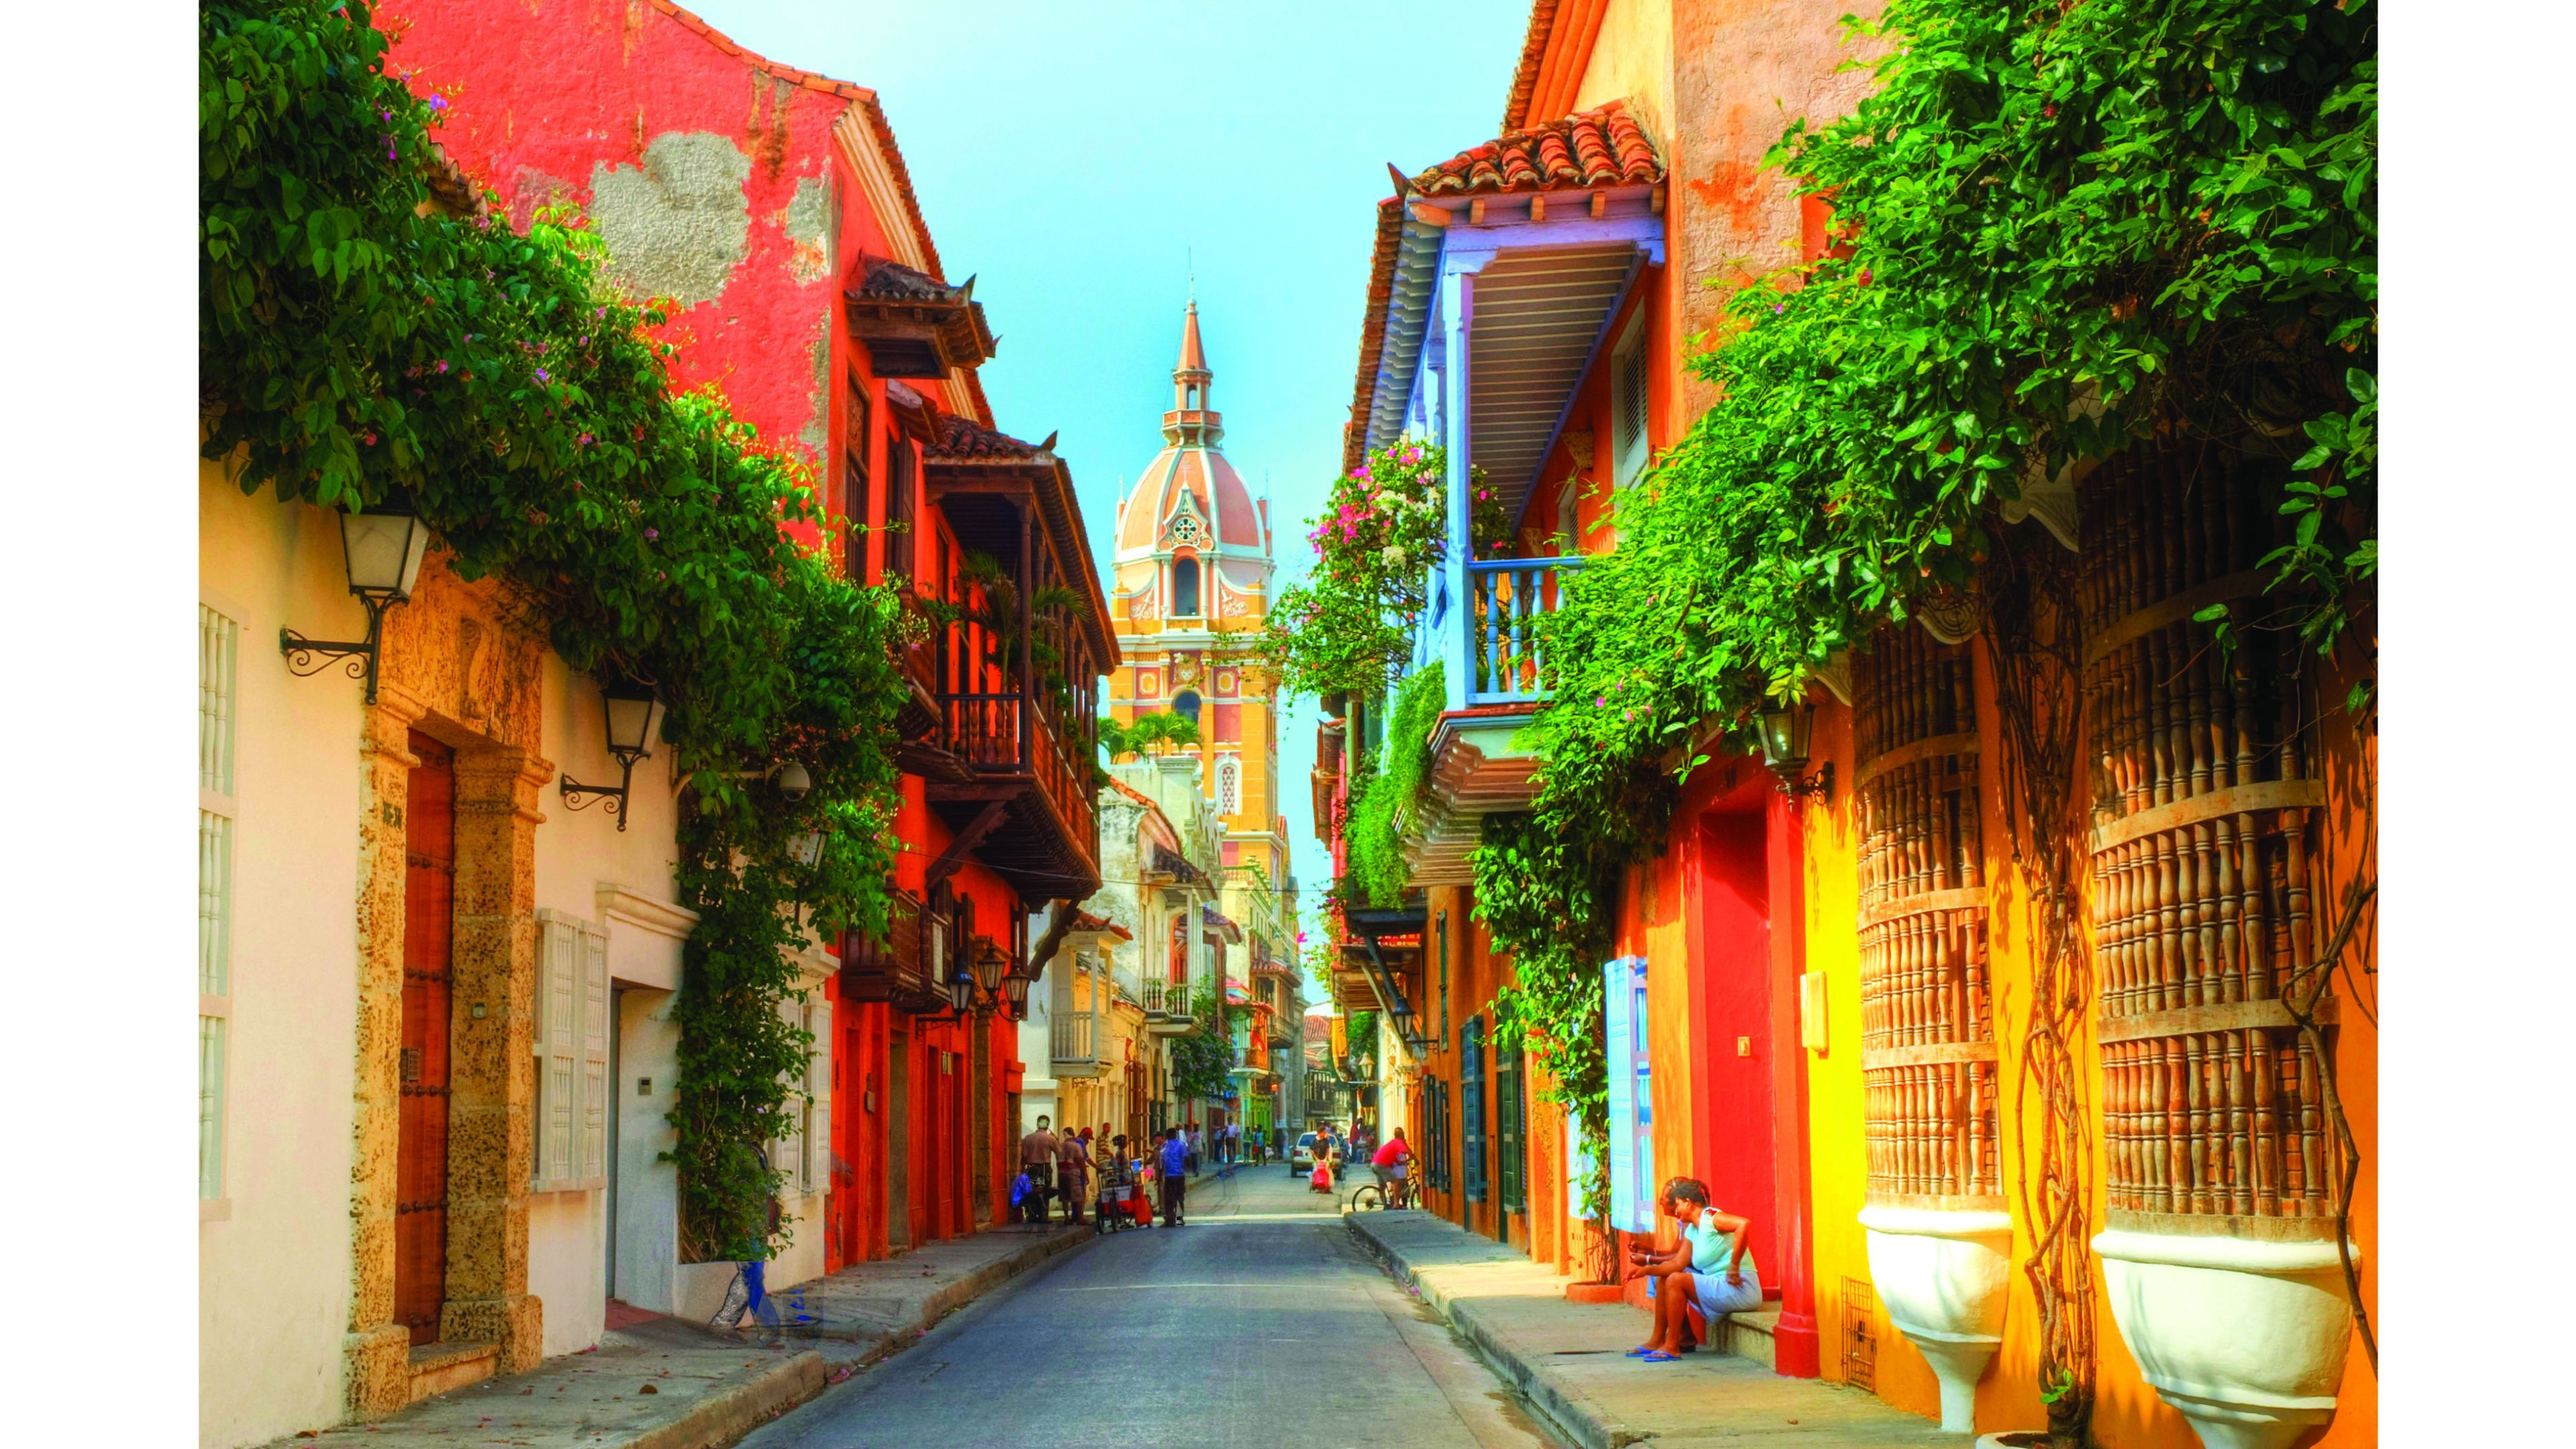 Cartagena Wallpapers - Cartagena Live Images, HD Wallpapers - T4 ...